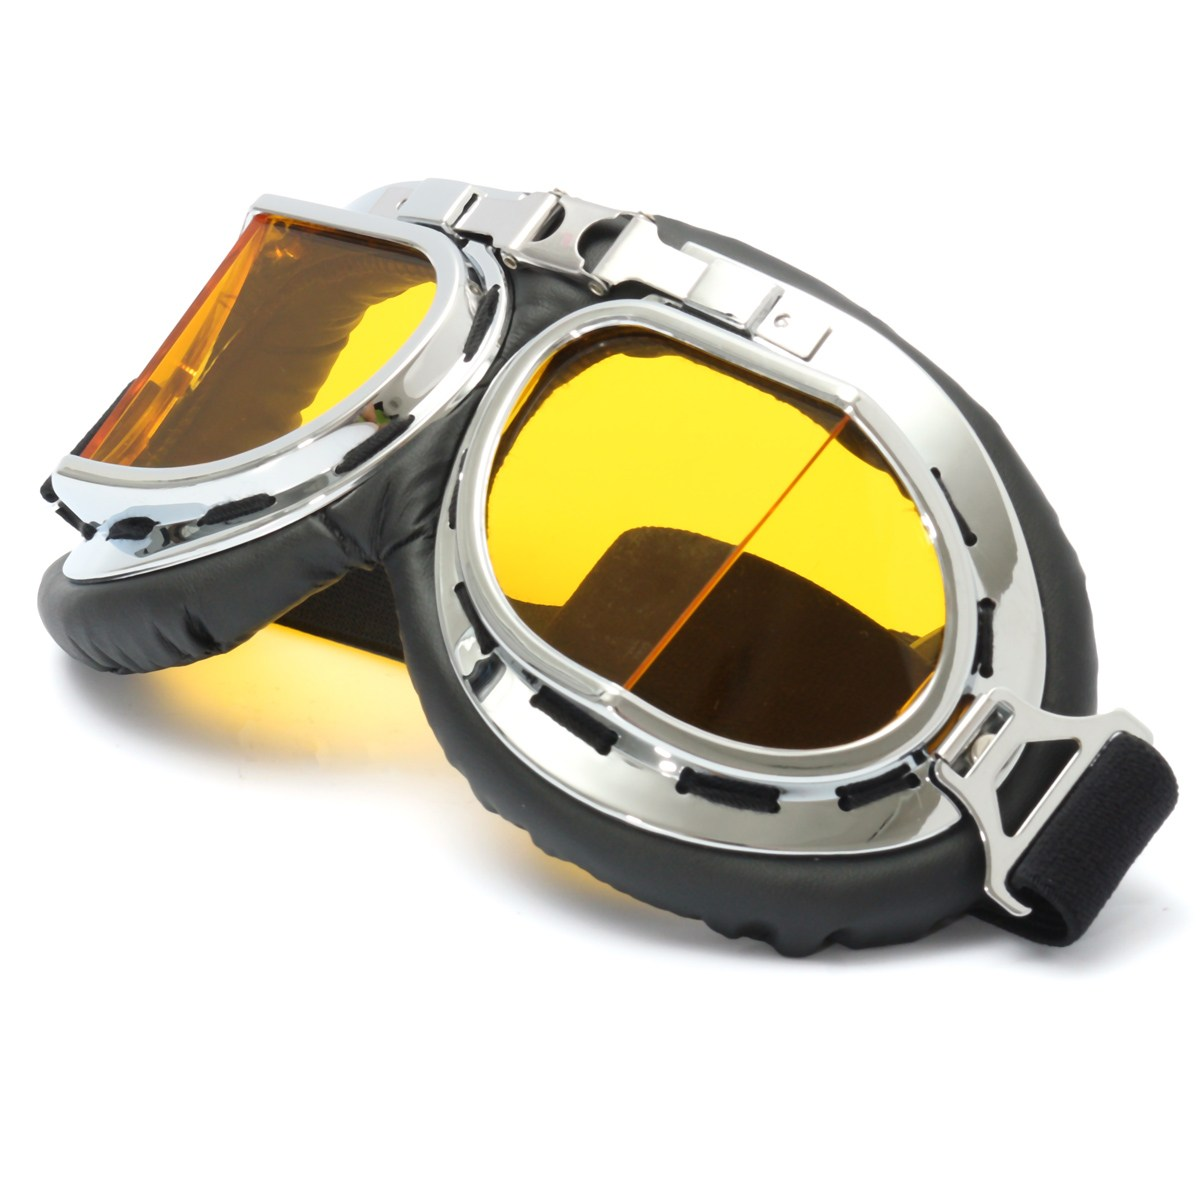 NEW Scooter Goggle Glasses Pilot Motorcycle Ski Goggle Smoke Lens  Workplace Safety Eye Protection